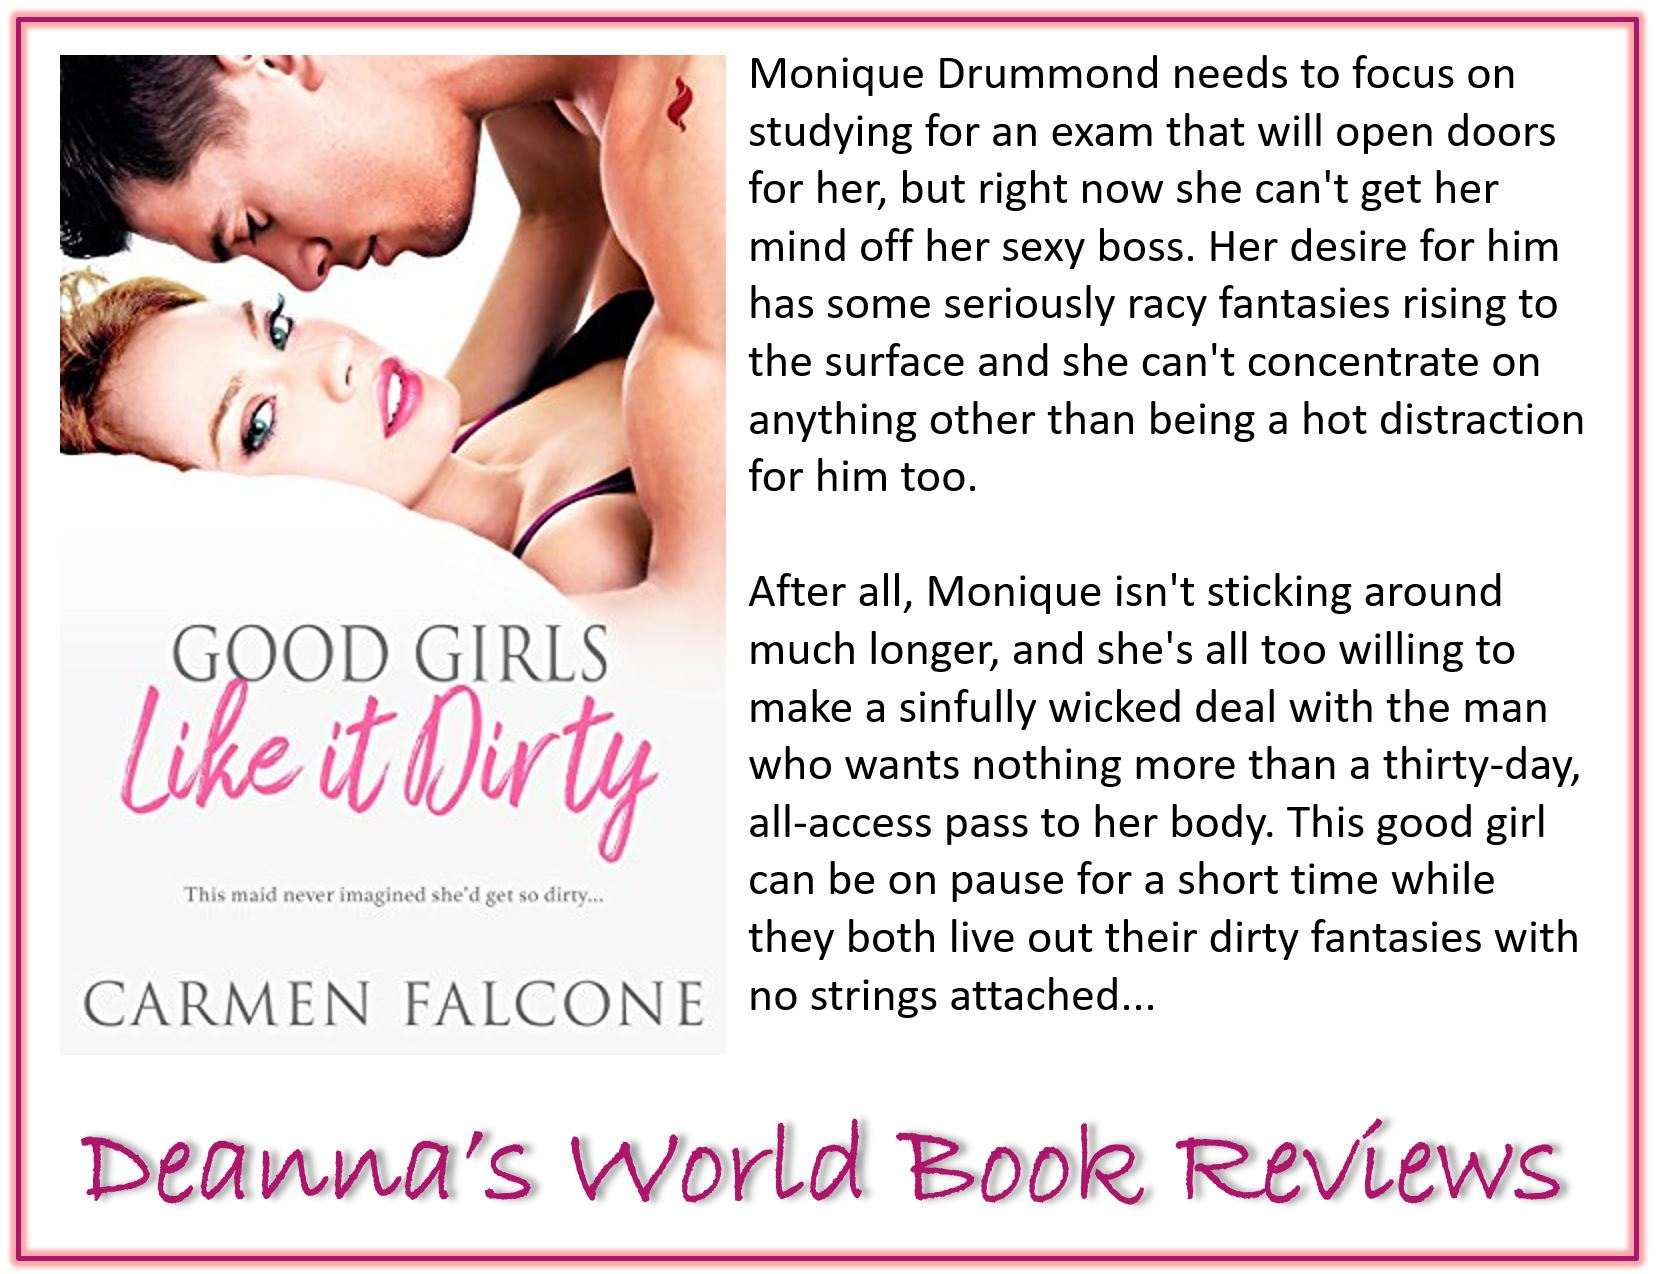 Good Girls Like It Dirty by Carmen Falcone blurb